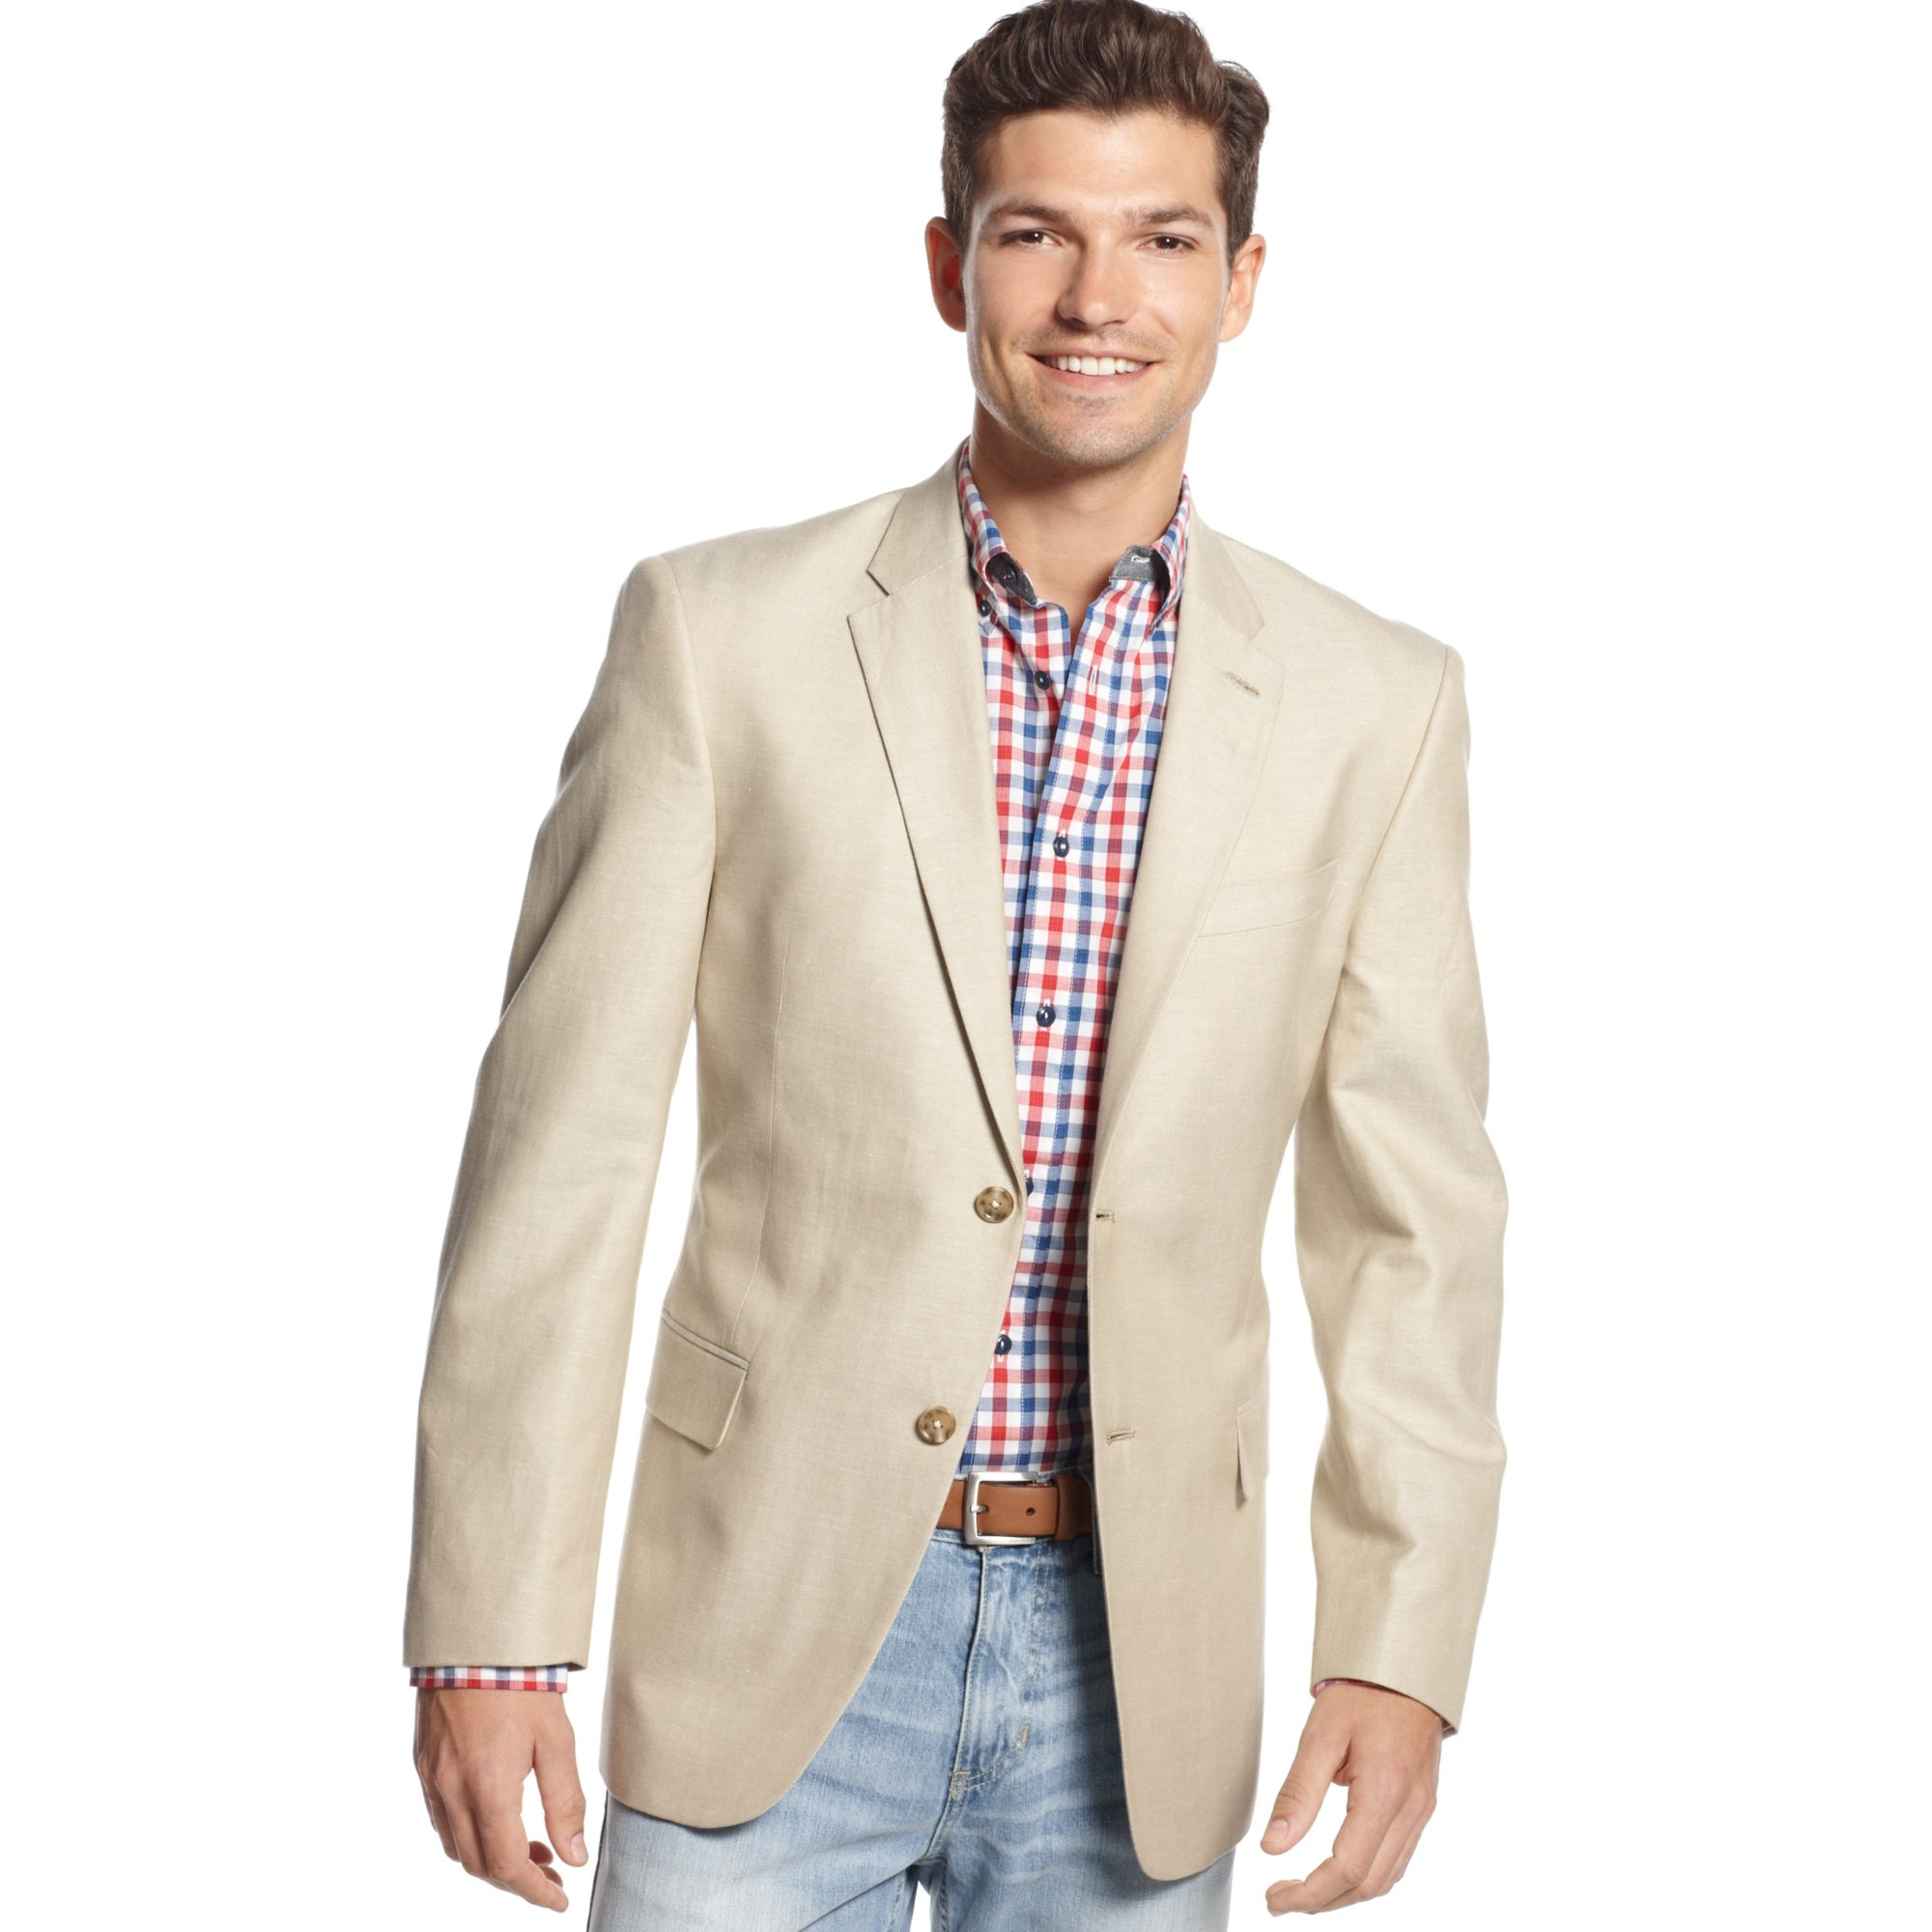 Tan Linen Sport Coat - JacketIn